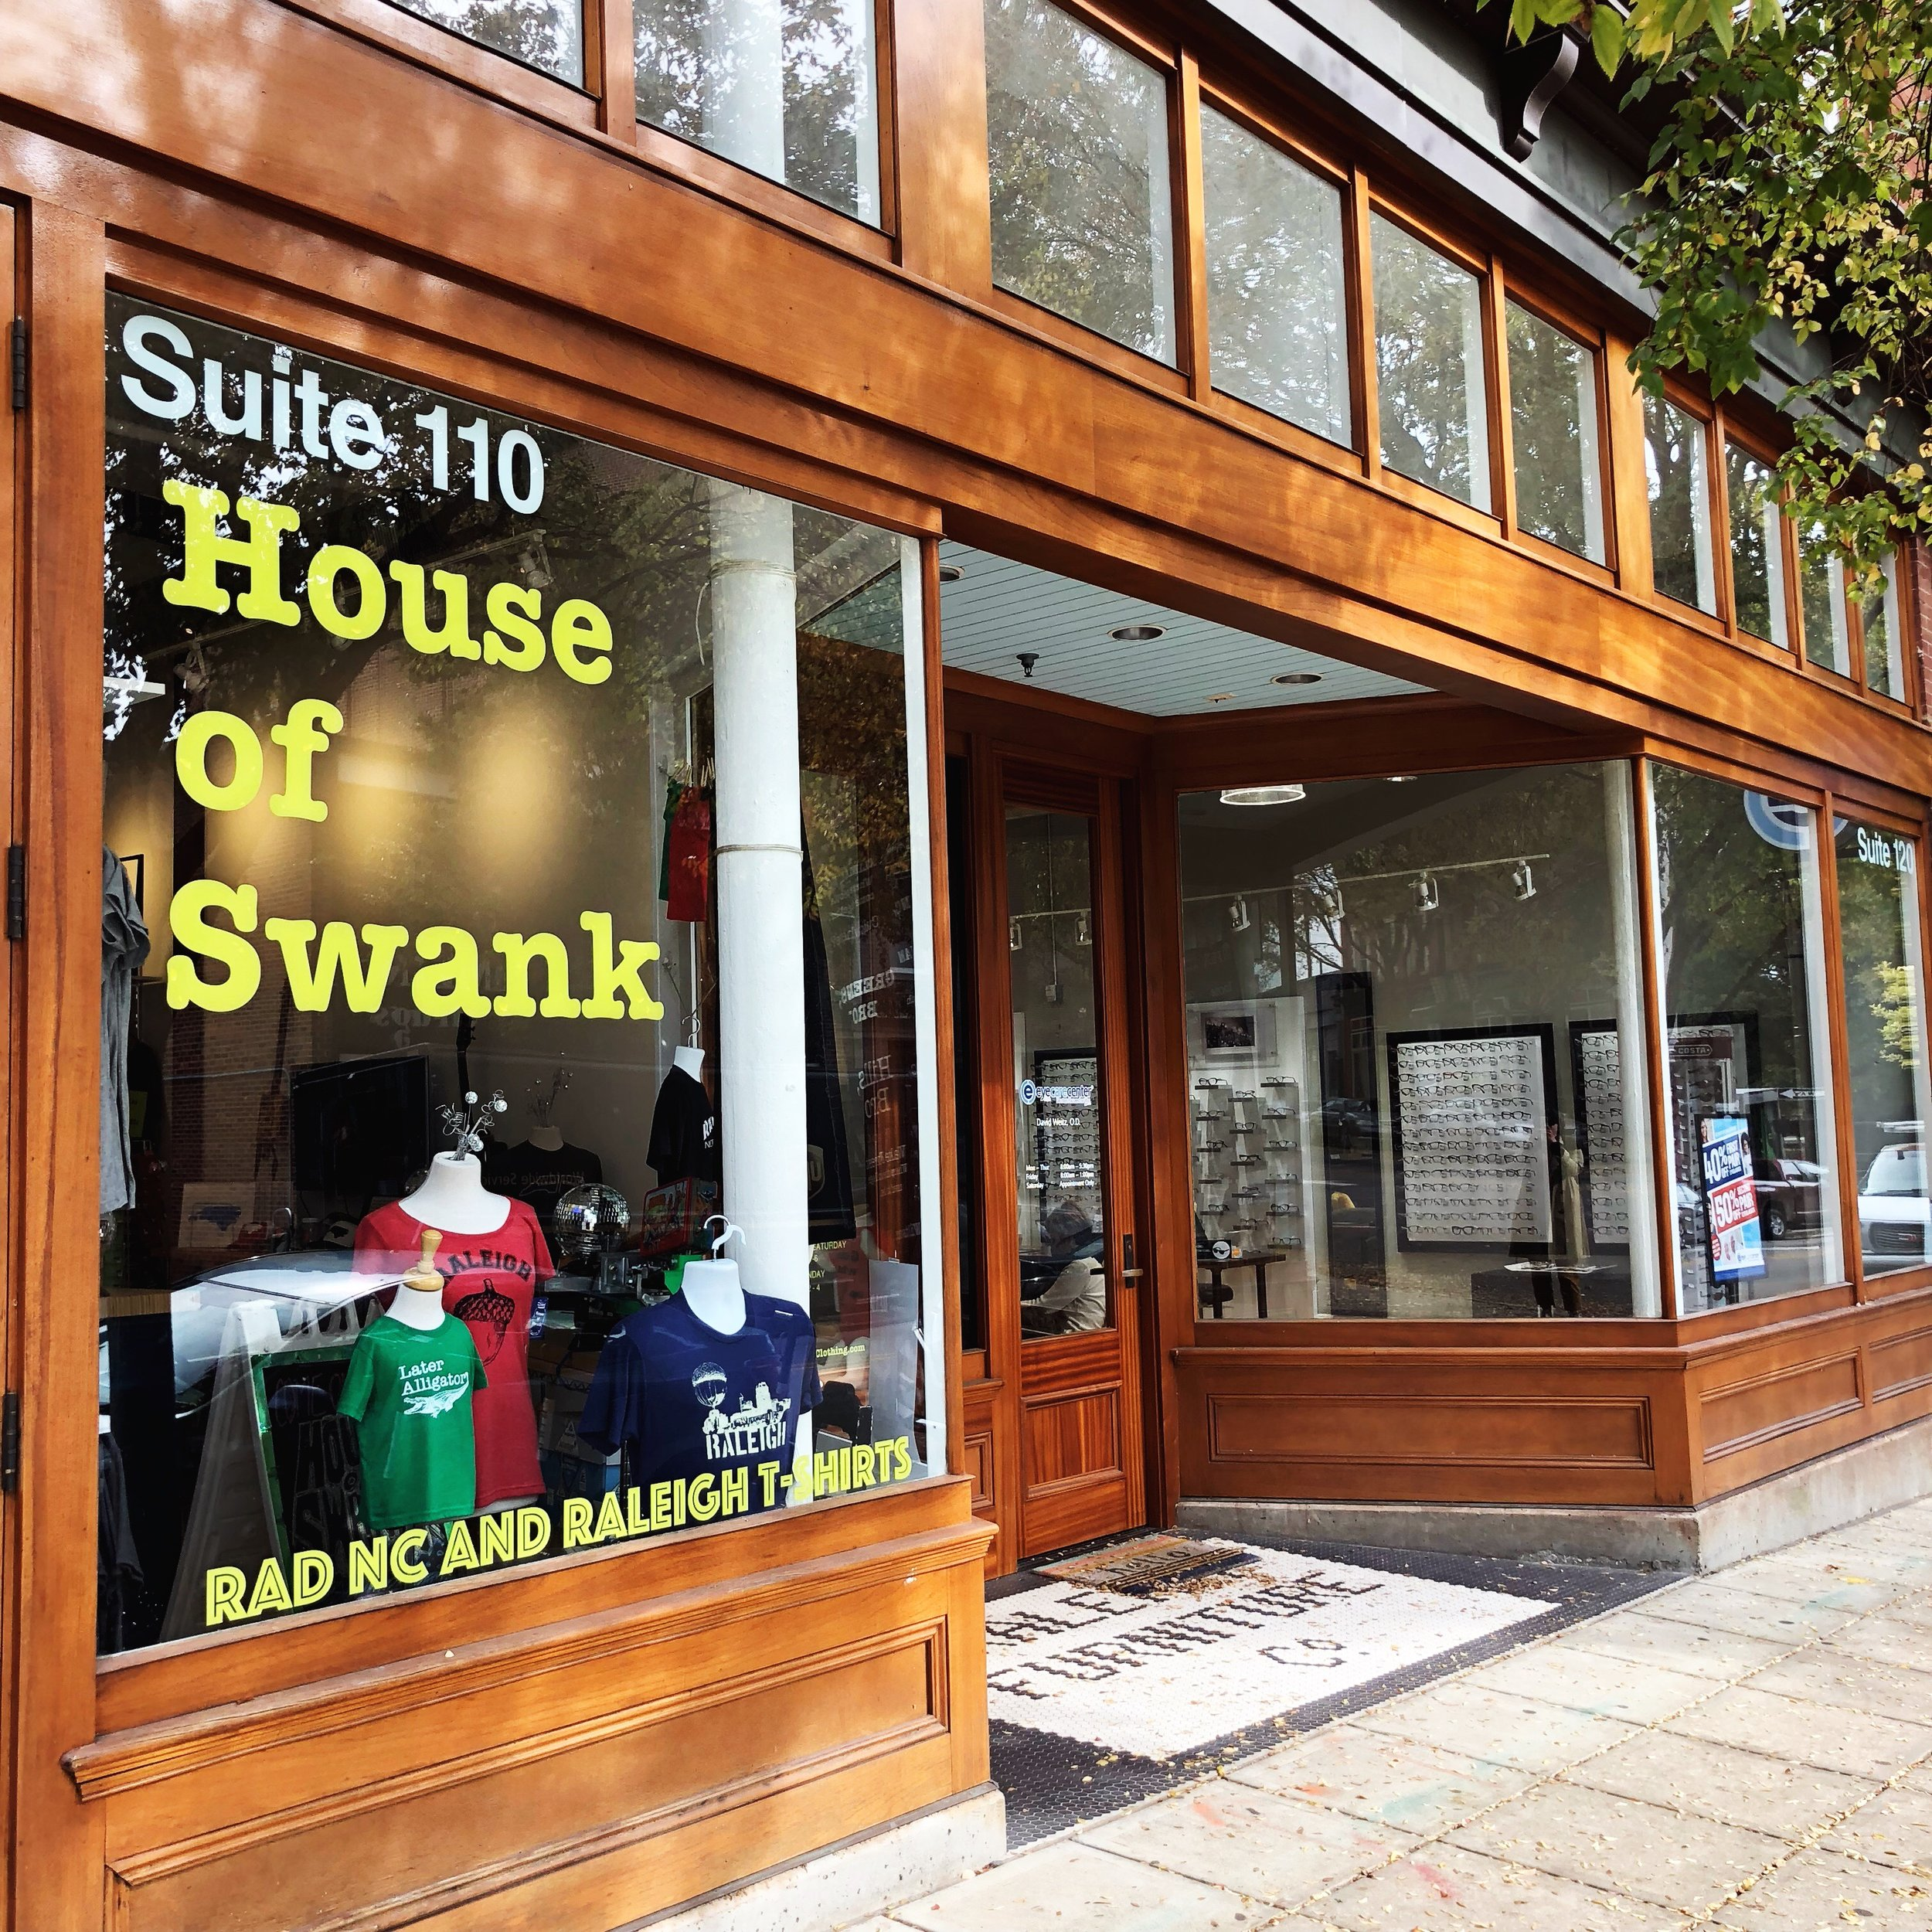 House of Swank Clothing - Authentic Raleigh and NC themed t-shirt design and print shop, putting the softest fun loving shirts in your hands for go-to wear and treasured gifts.119 E Hargett St.